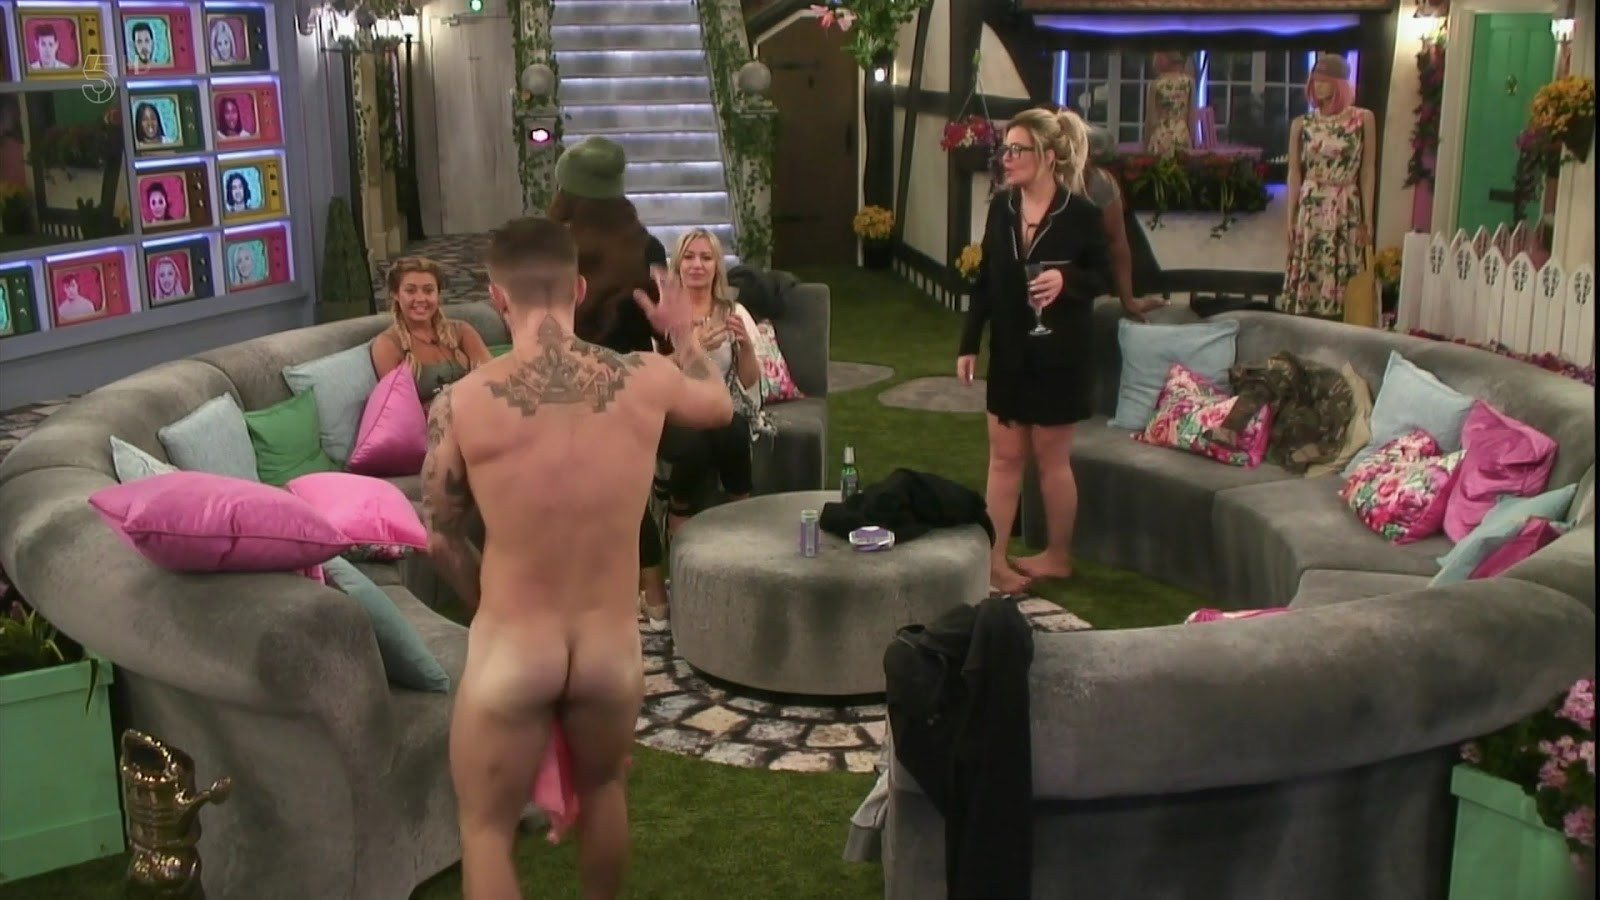 Nude Big Brother Men Gif